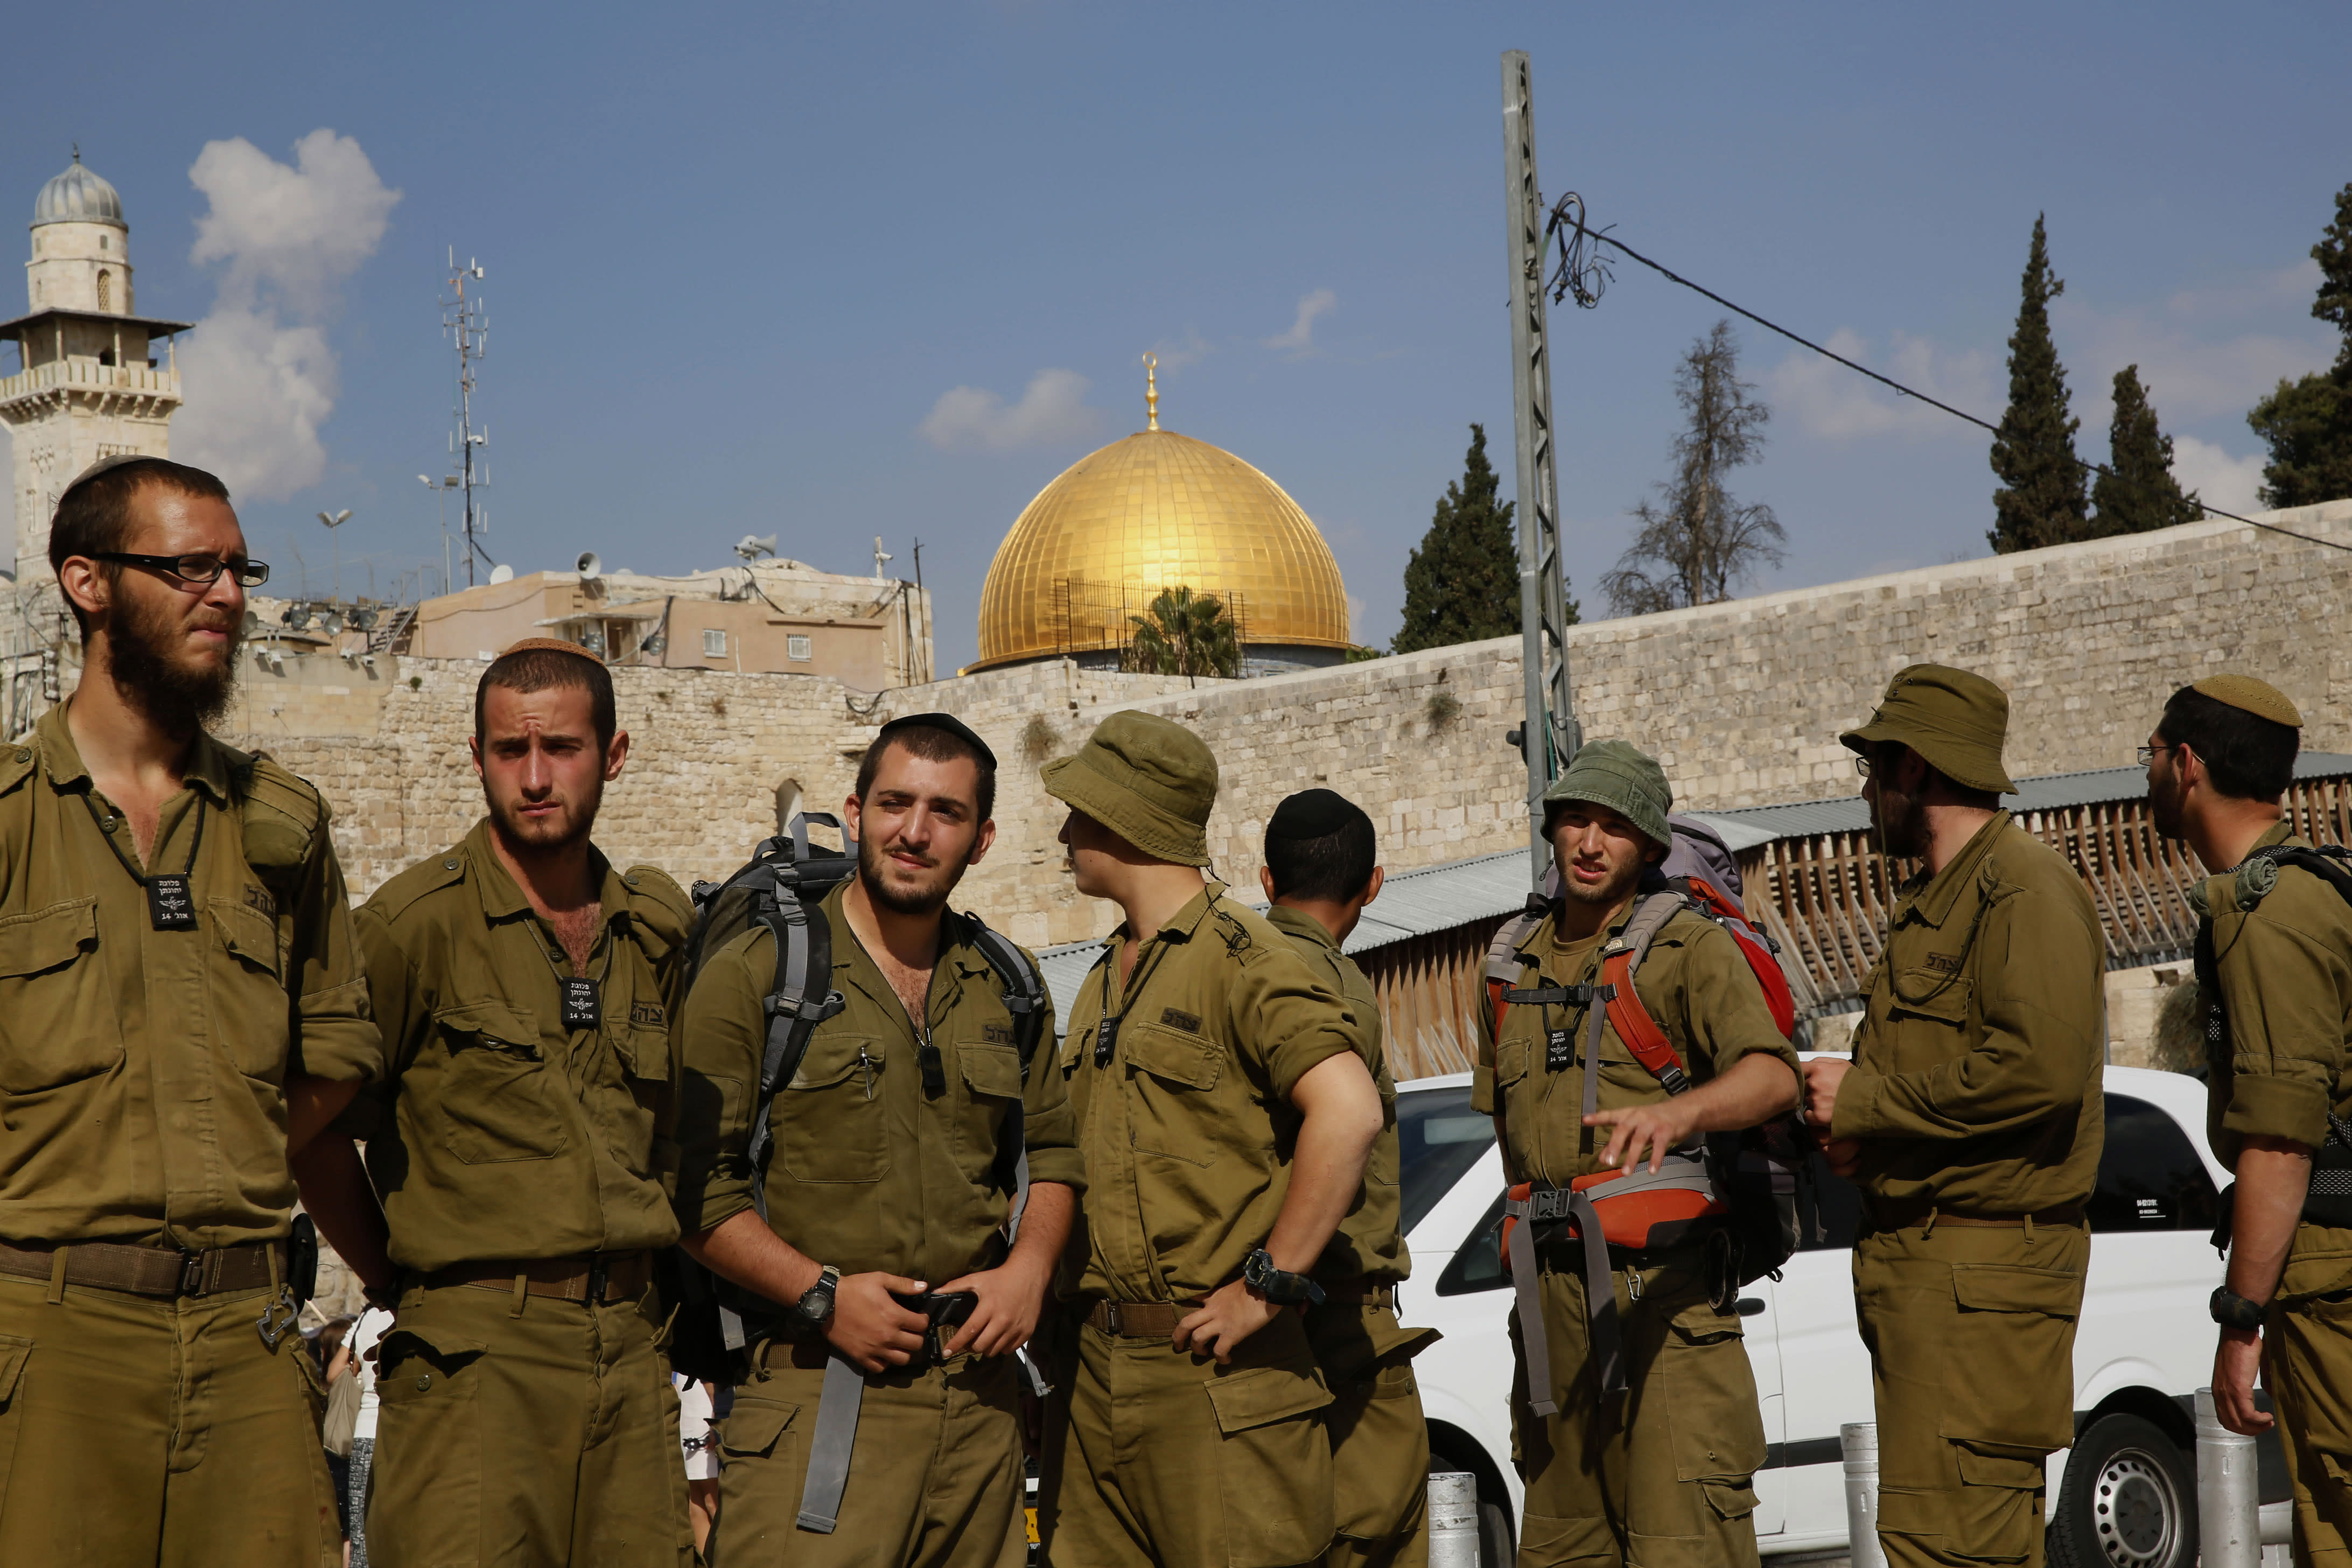 Israeli soldiers stand near the Western Wall at the al-Aqsa mosque compound in Jerusalem on October 30, 2014 (AFP Photo/Gali Tibbon)